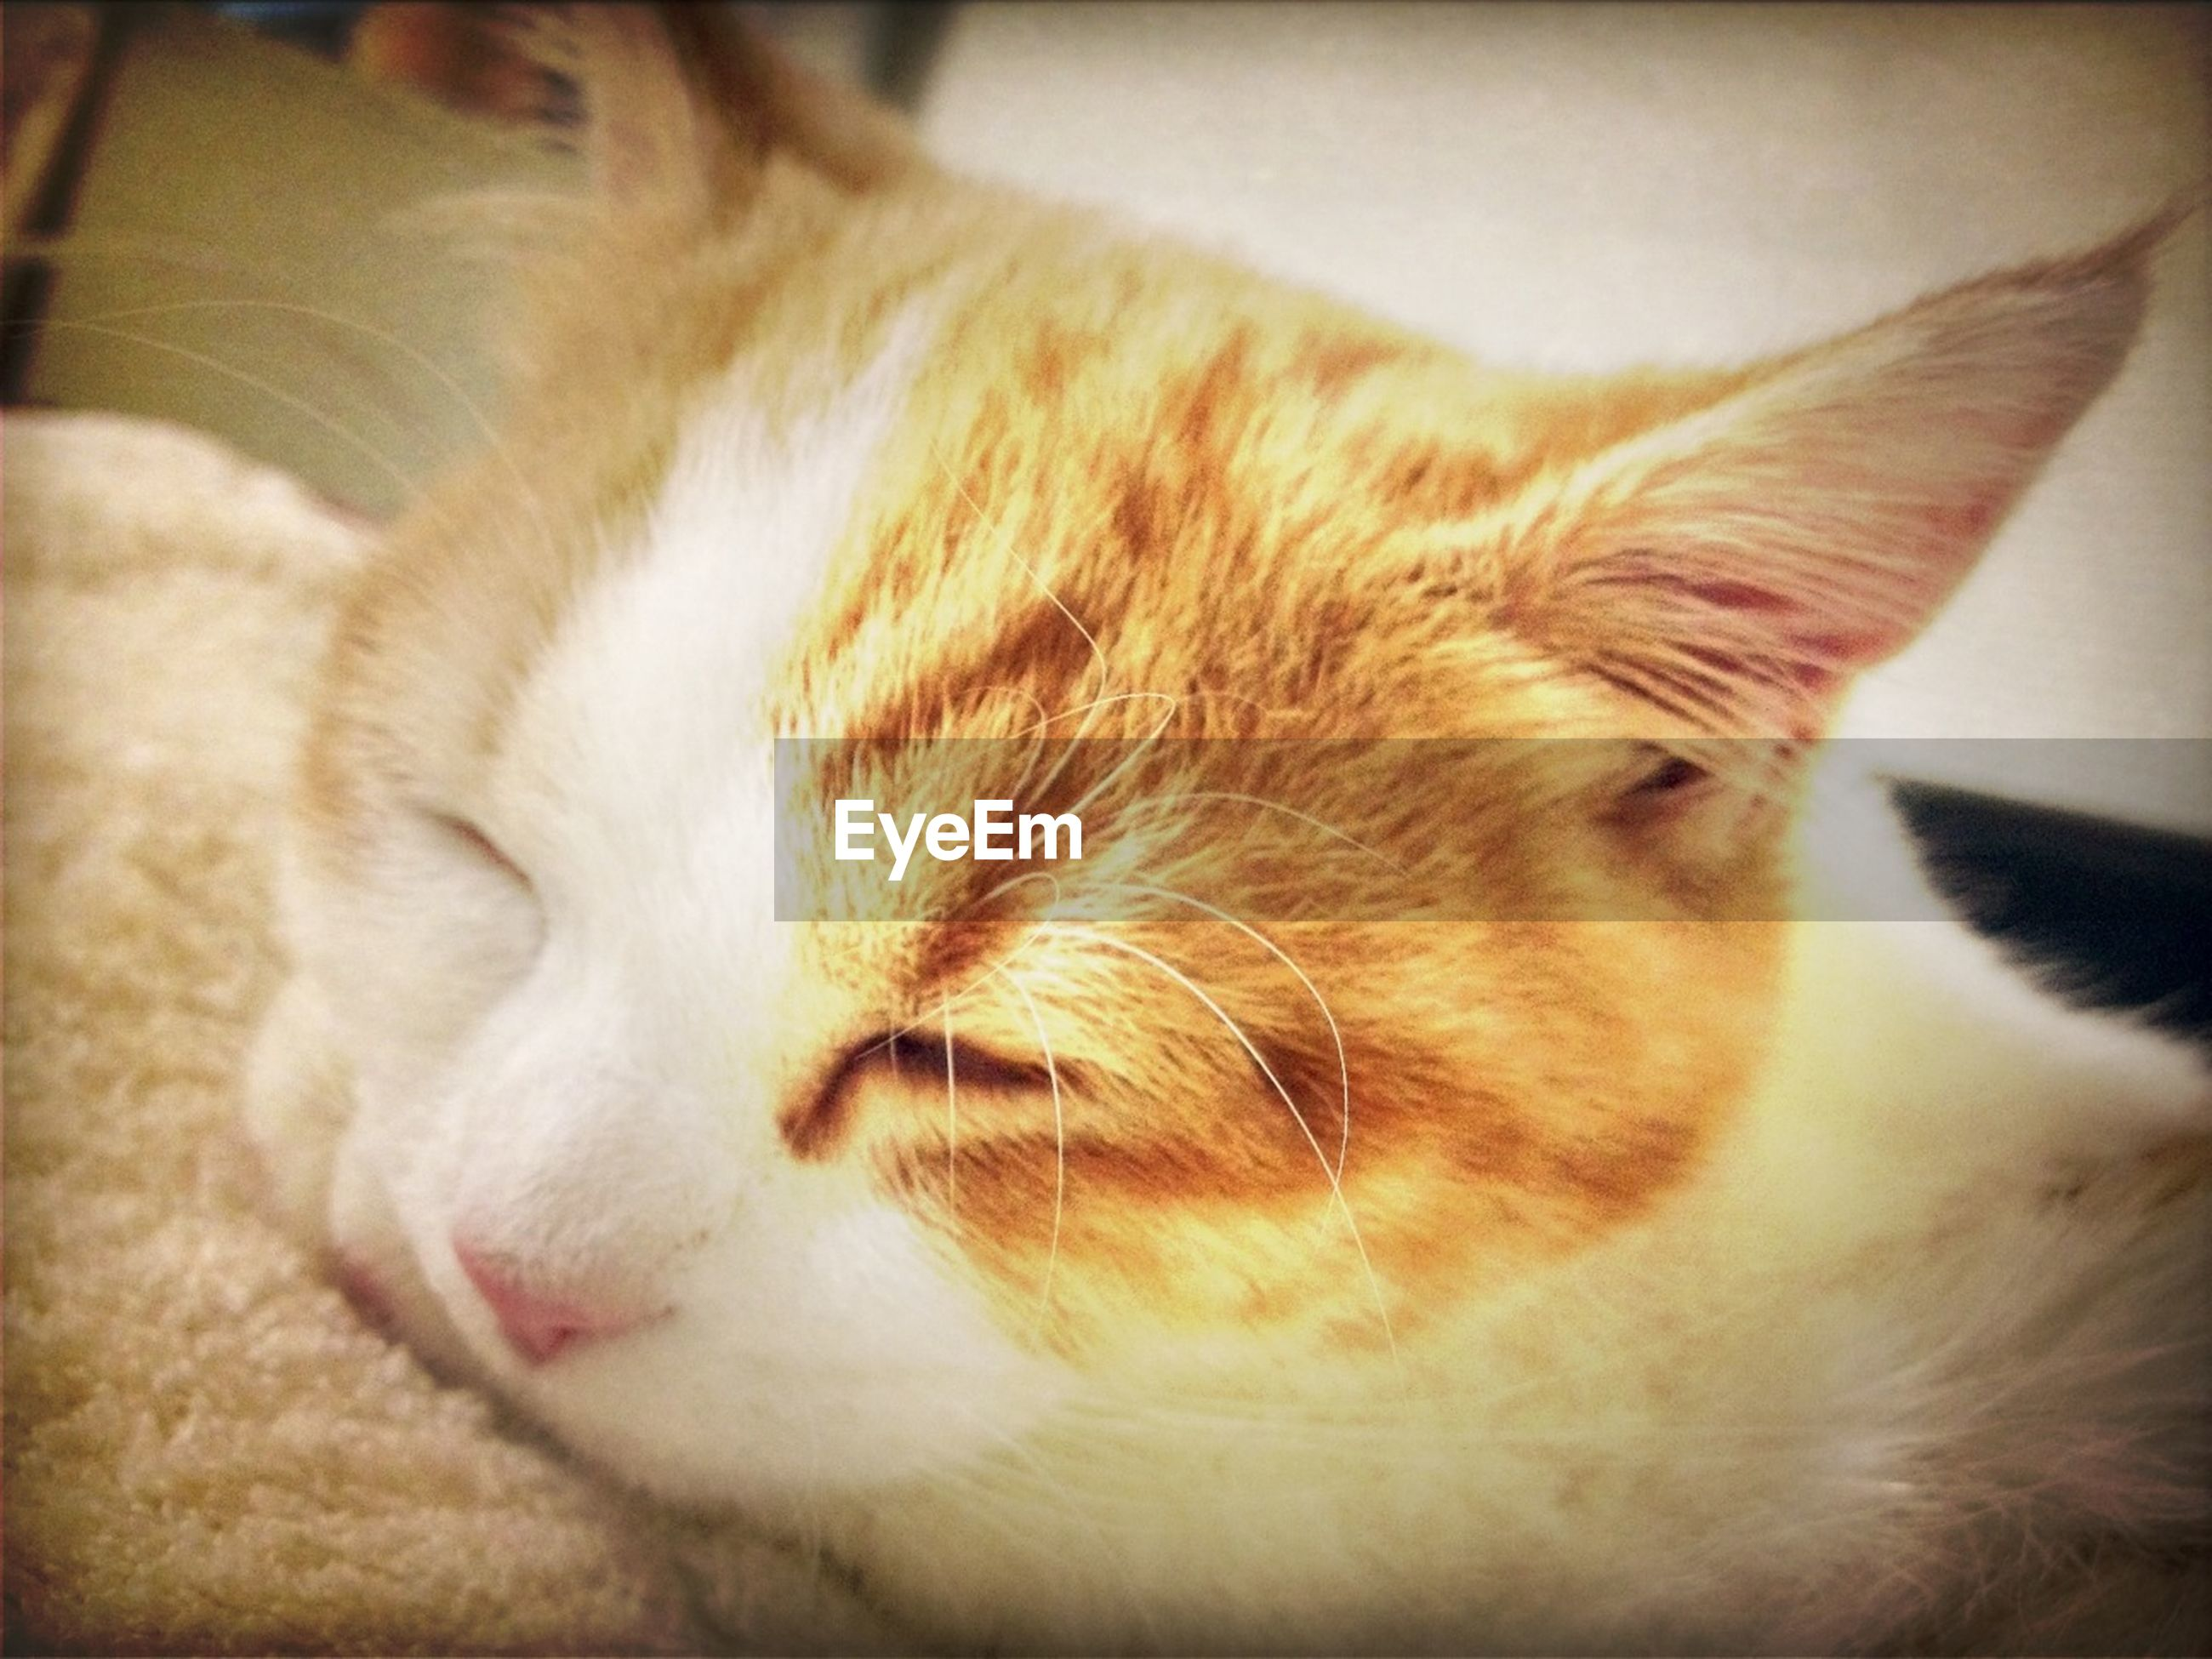 pets, domestic animals, indoors, domestic cat, mammal, one animal, cat, animal themes, relaxation, feline, whisker, resting, close-up, lying down, sleeping, eyes closed, animal head, home interior, bed, home